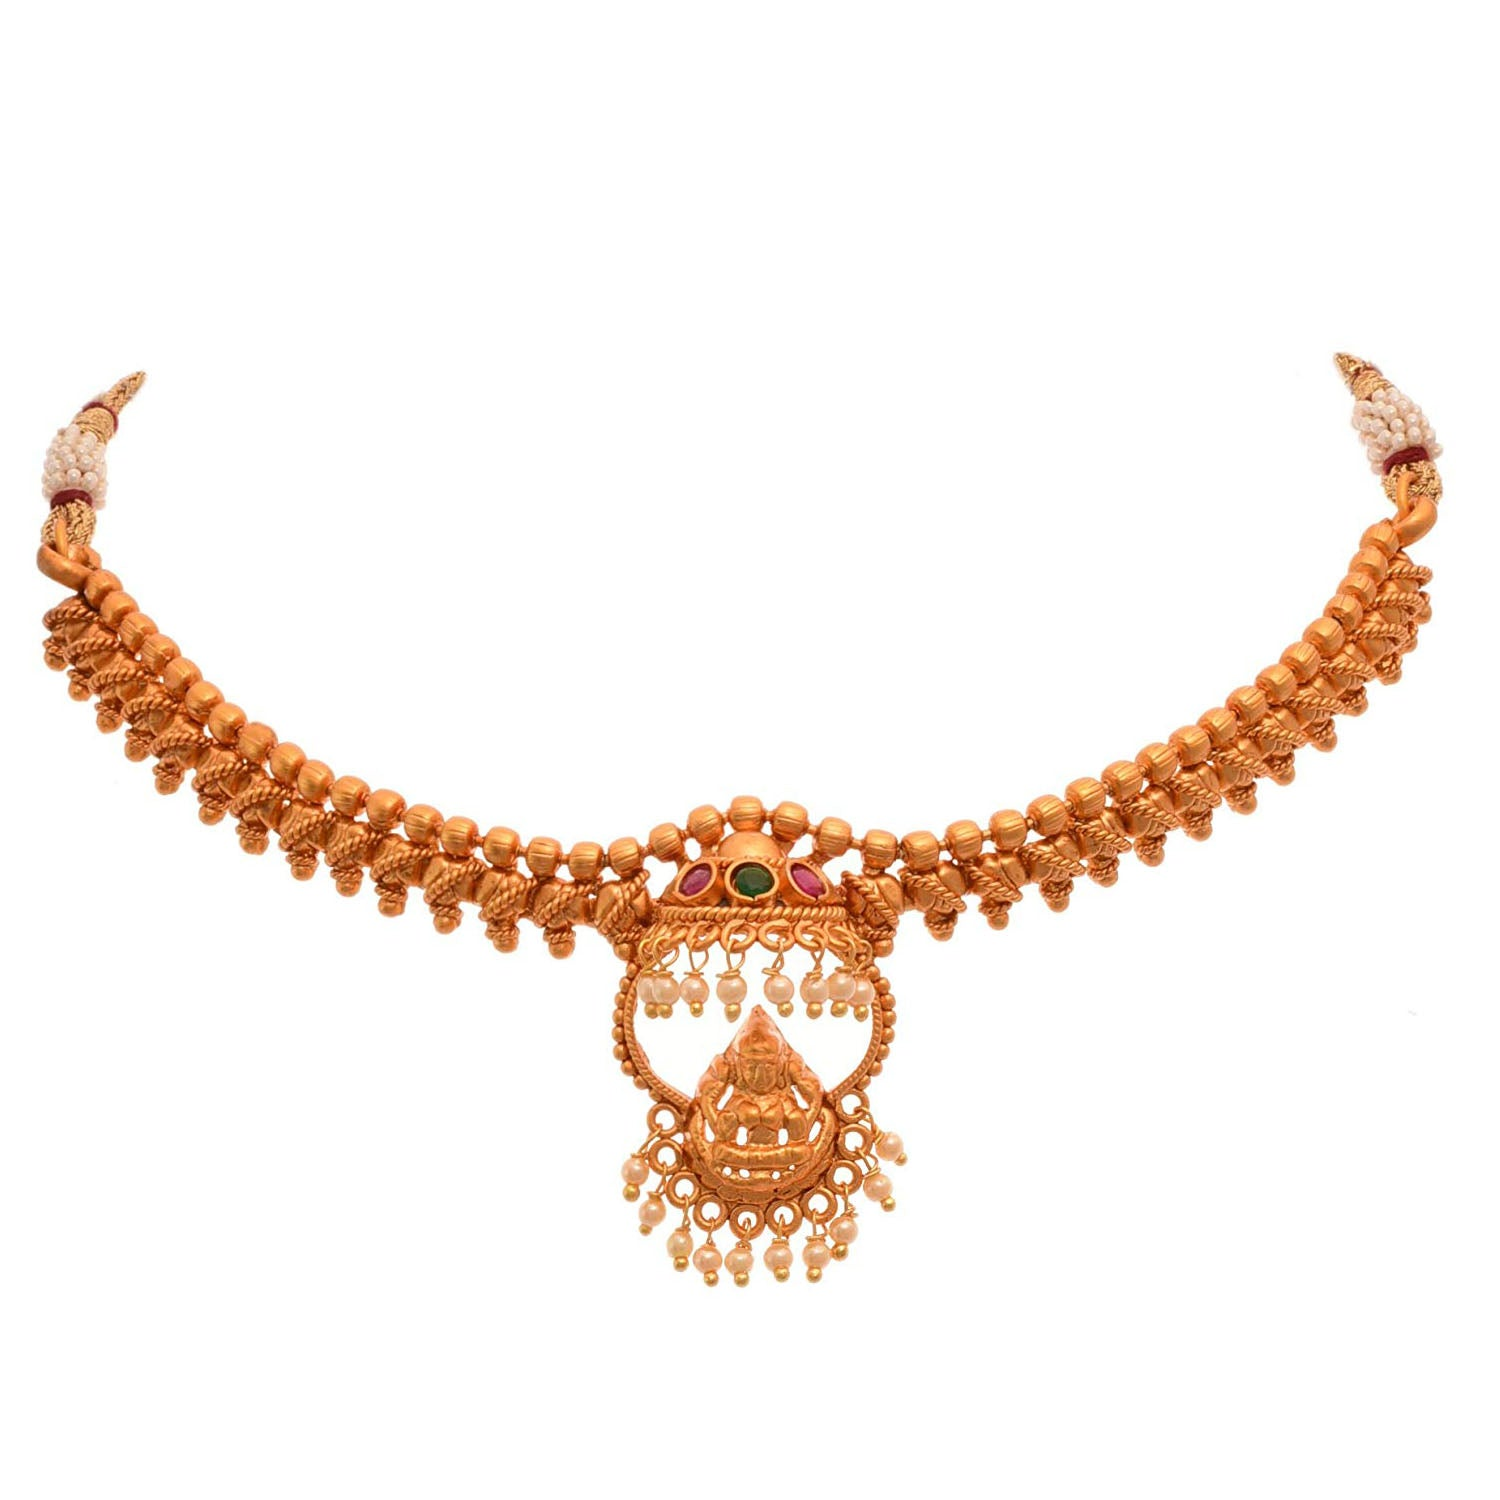 Traditional Ethnic Temple Laxmi Goddess One Gram Matt Gold Plated Bajuband/Armlet with Stone & Pearls for Women & Girls.